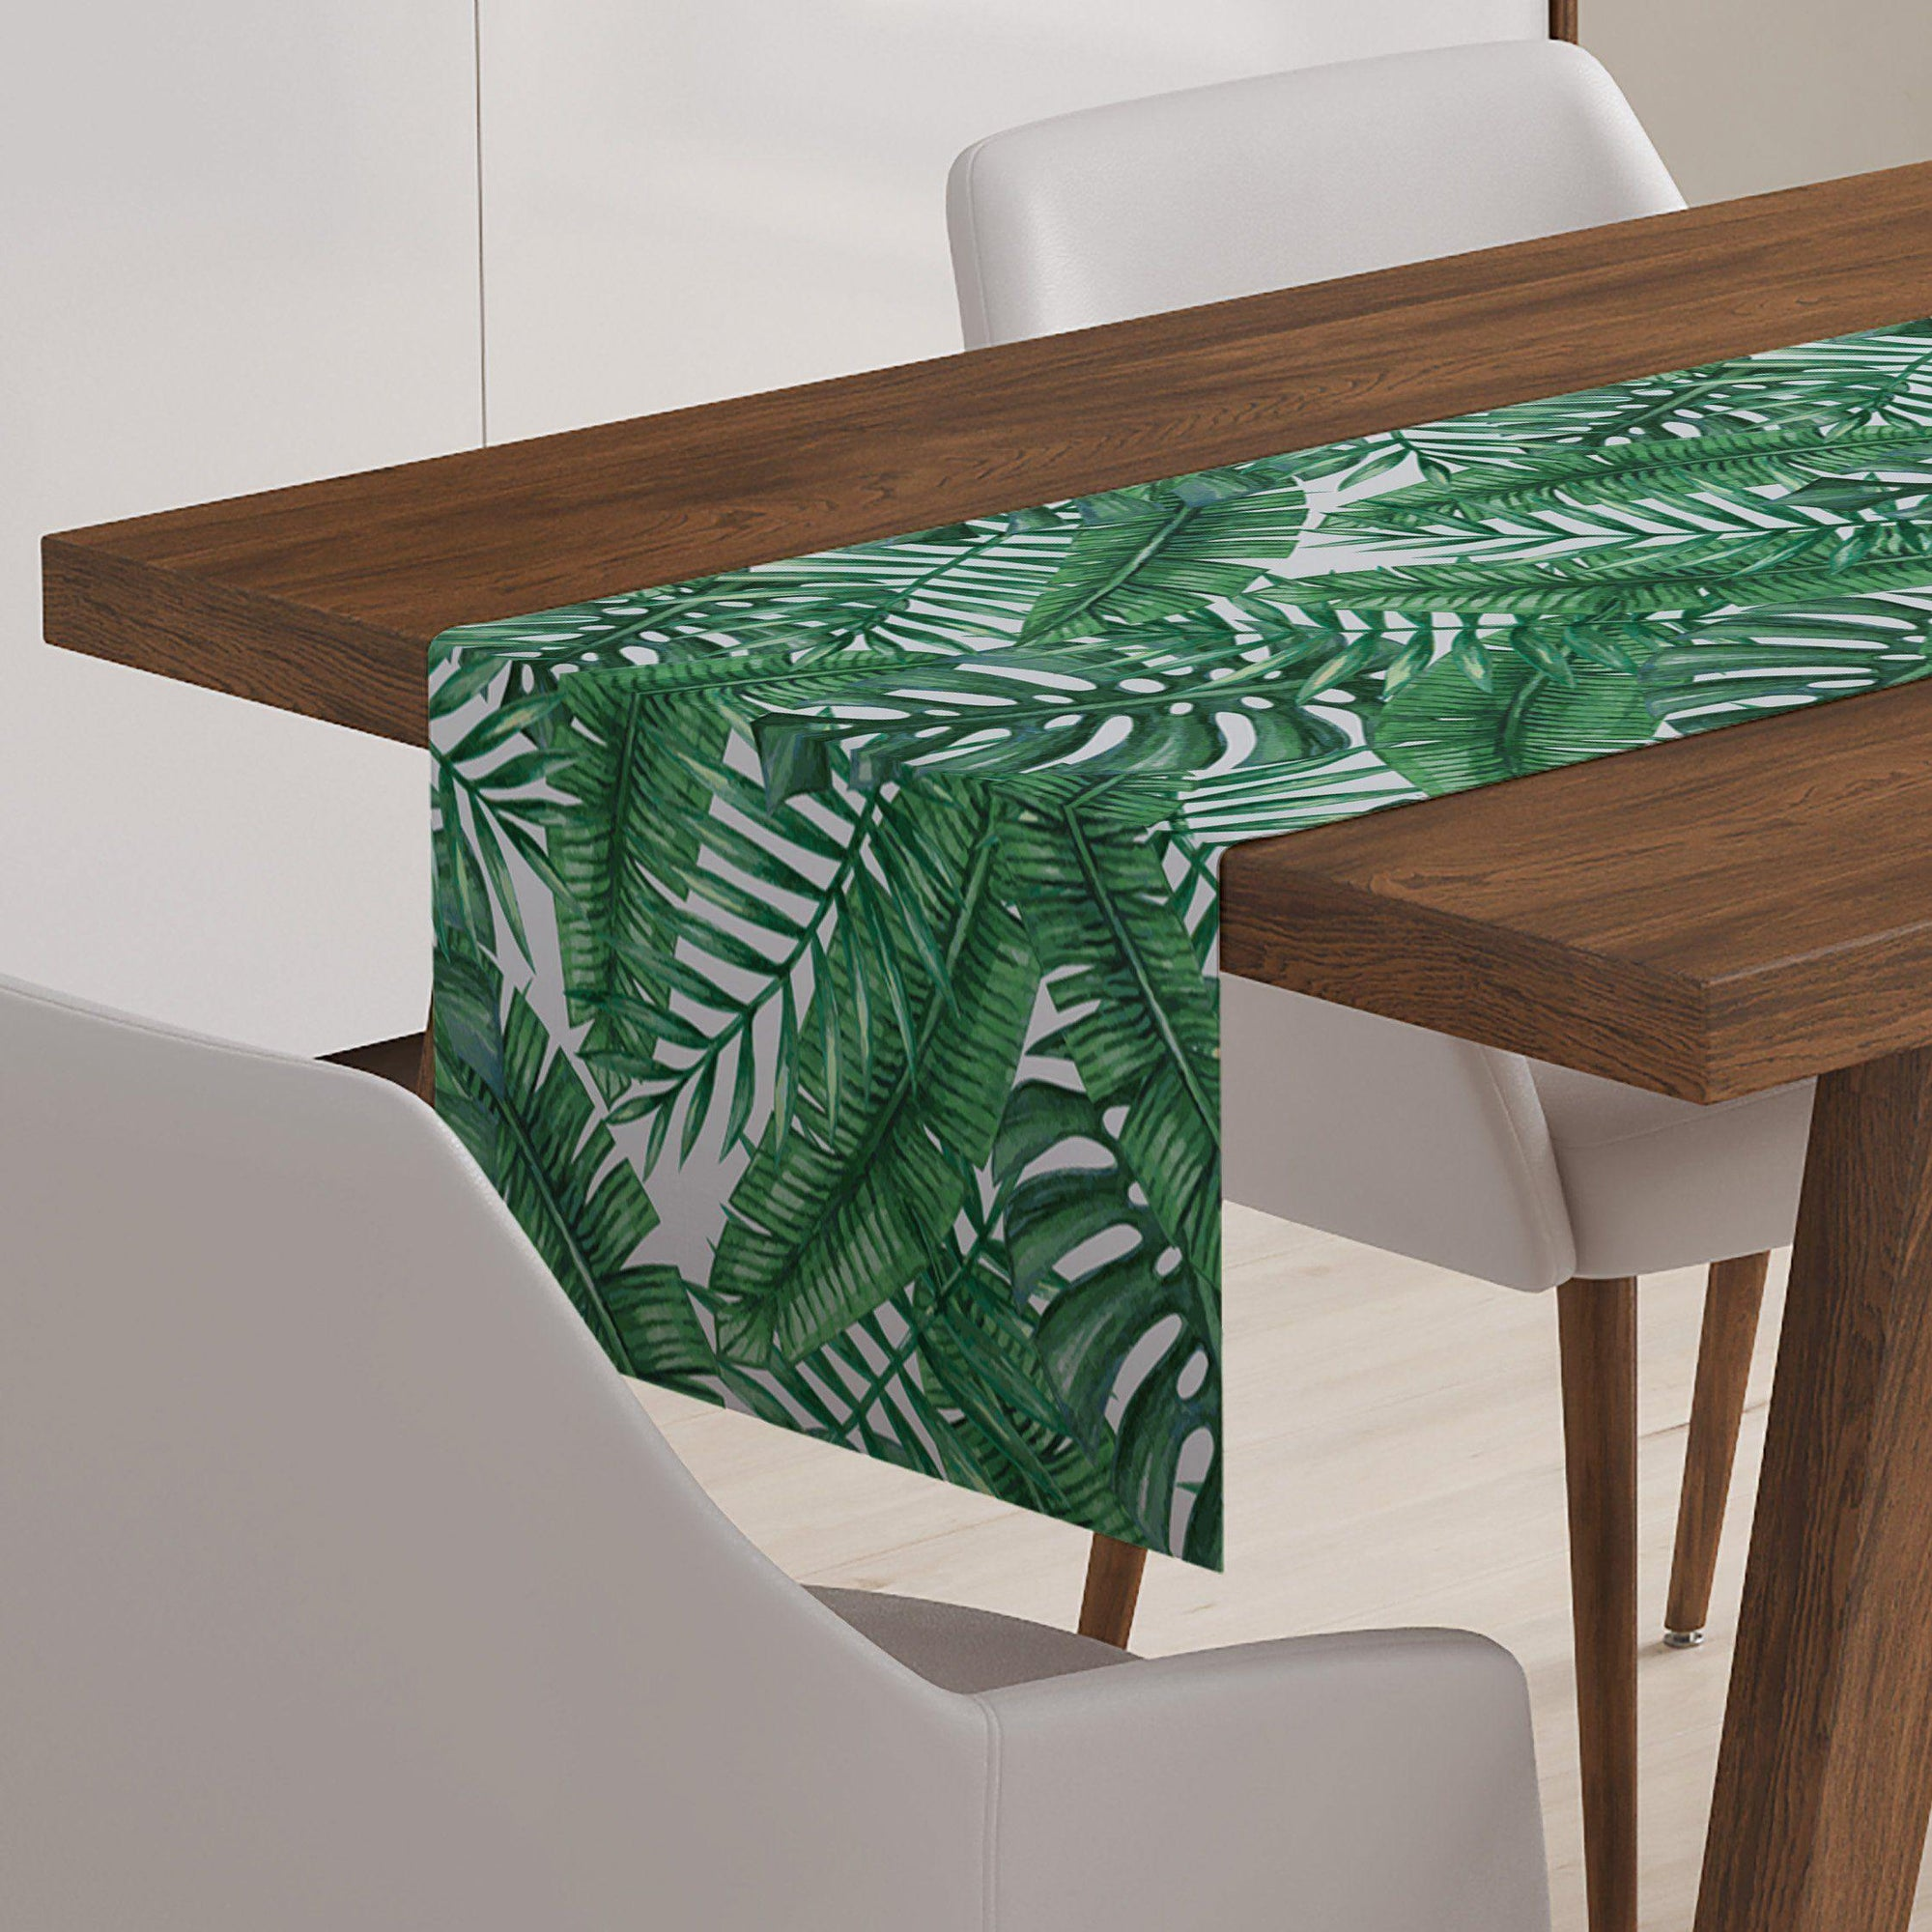 Bahamas Table Runner - Table Runners - W.FRANCIS